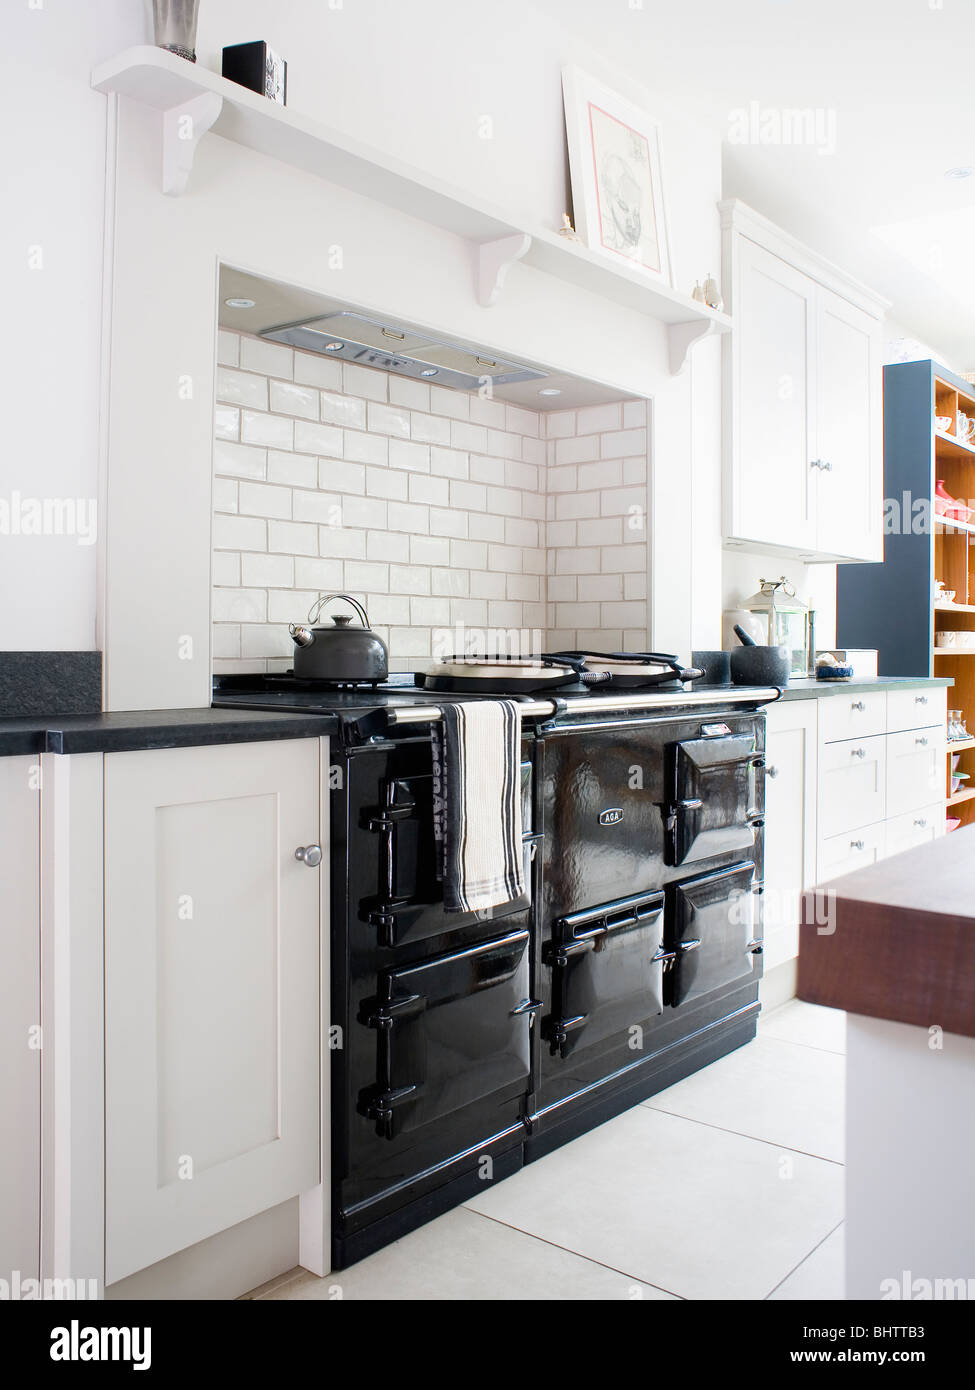 Aga Kitchen Appliances Black Double Aga Oven In Modern White Kitchen Stock Photo Royalty